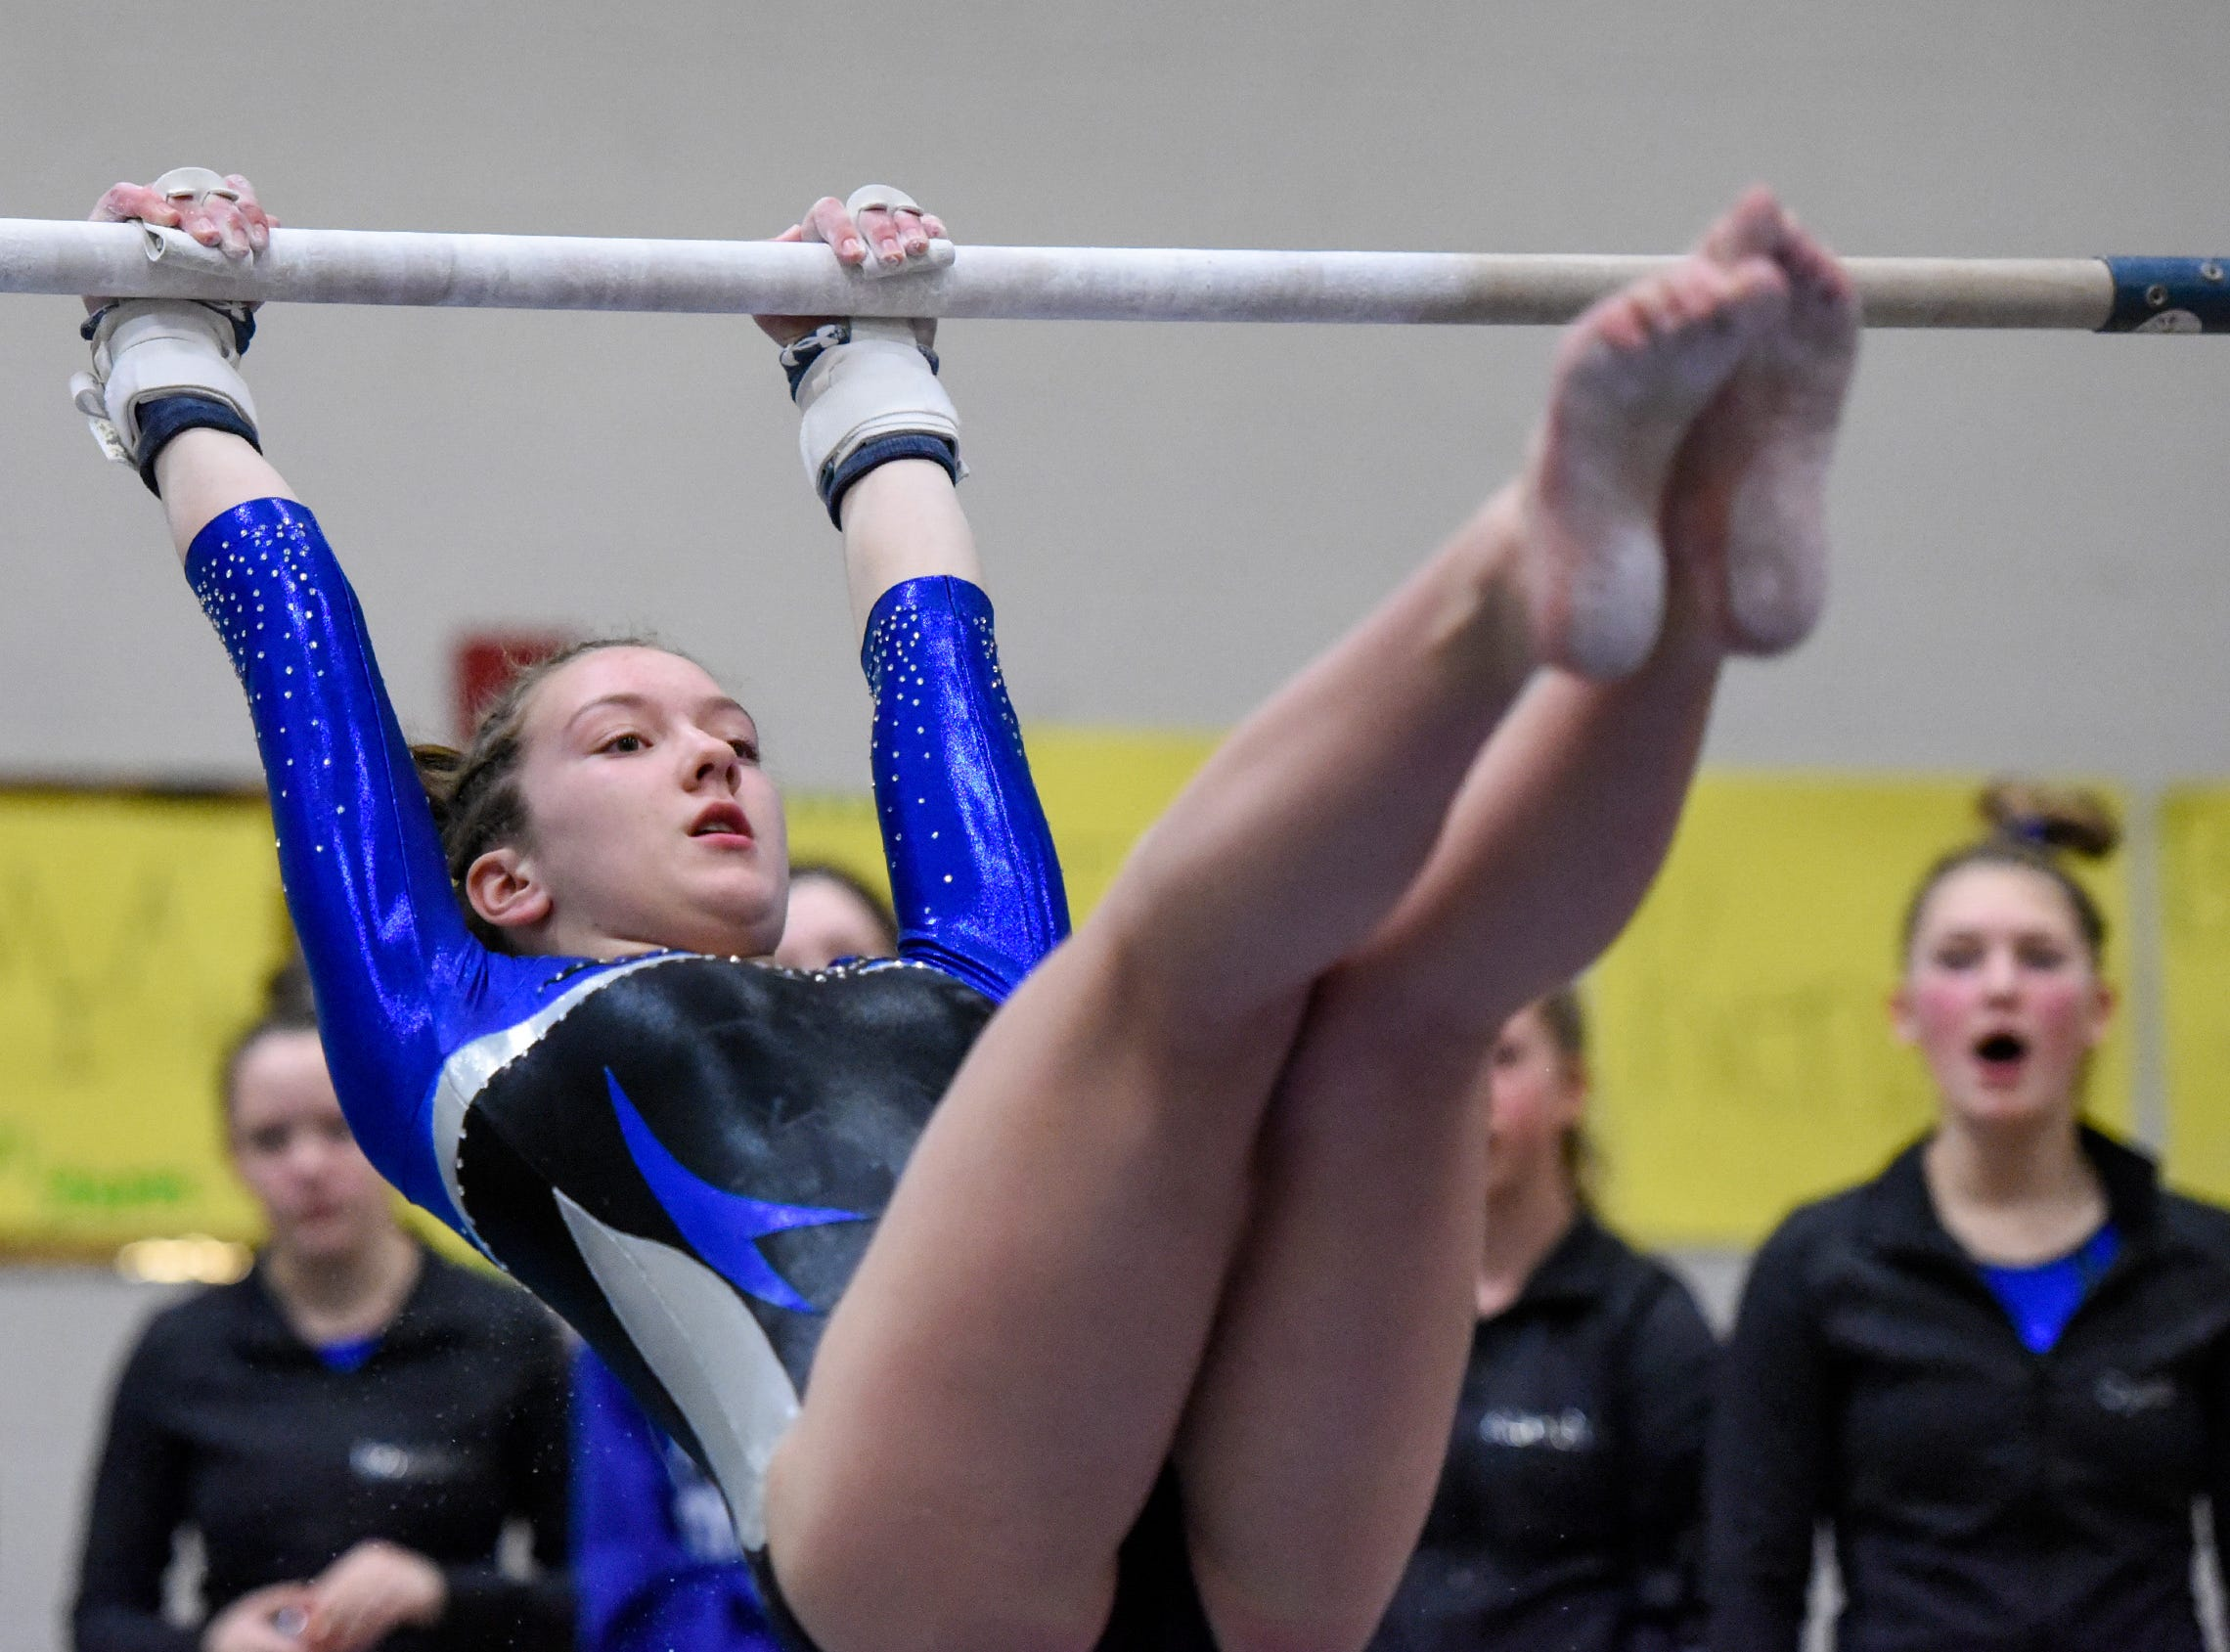 Sartell's Morgan Weber competes on the bars Thursday, Jan. 3, at the Sauk Rapids-Rice High School.